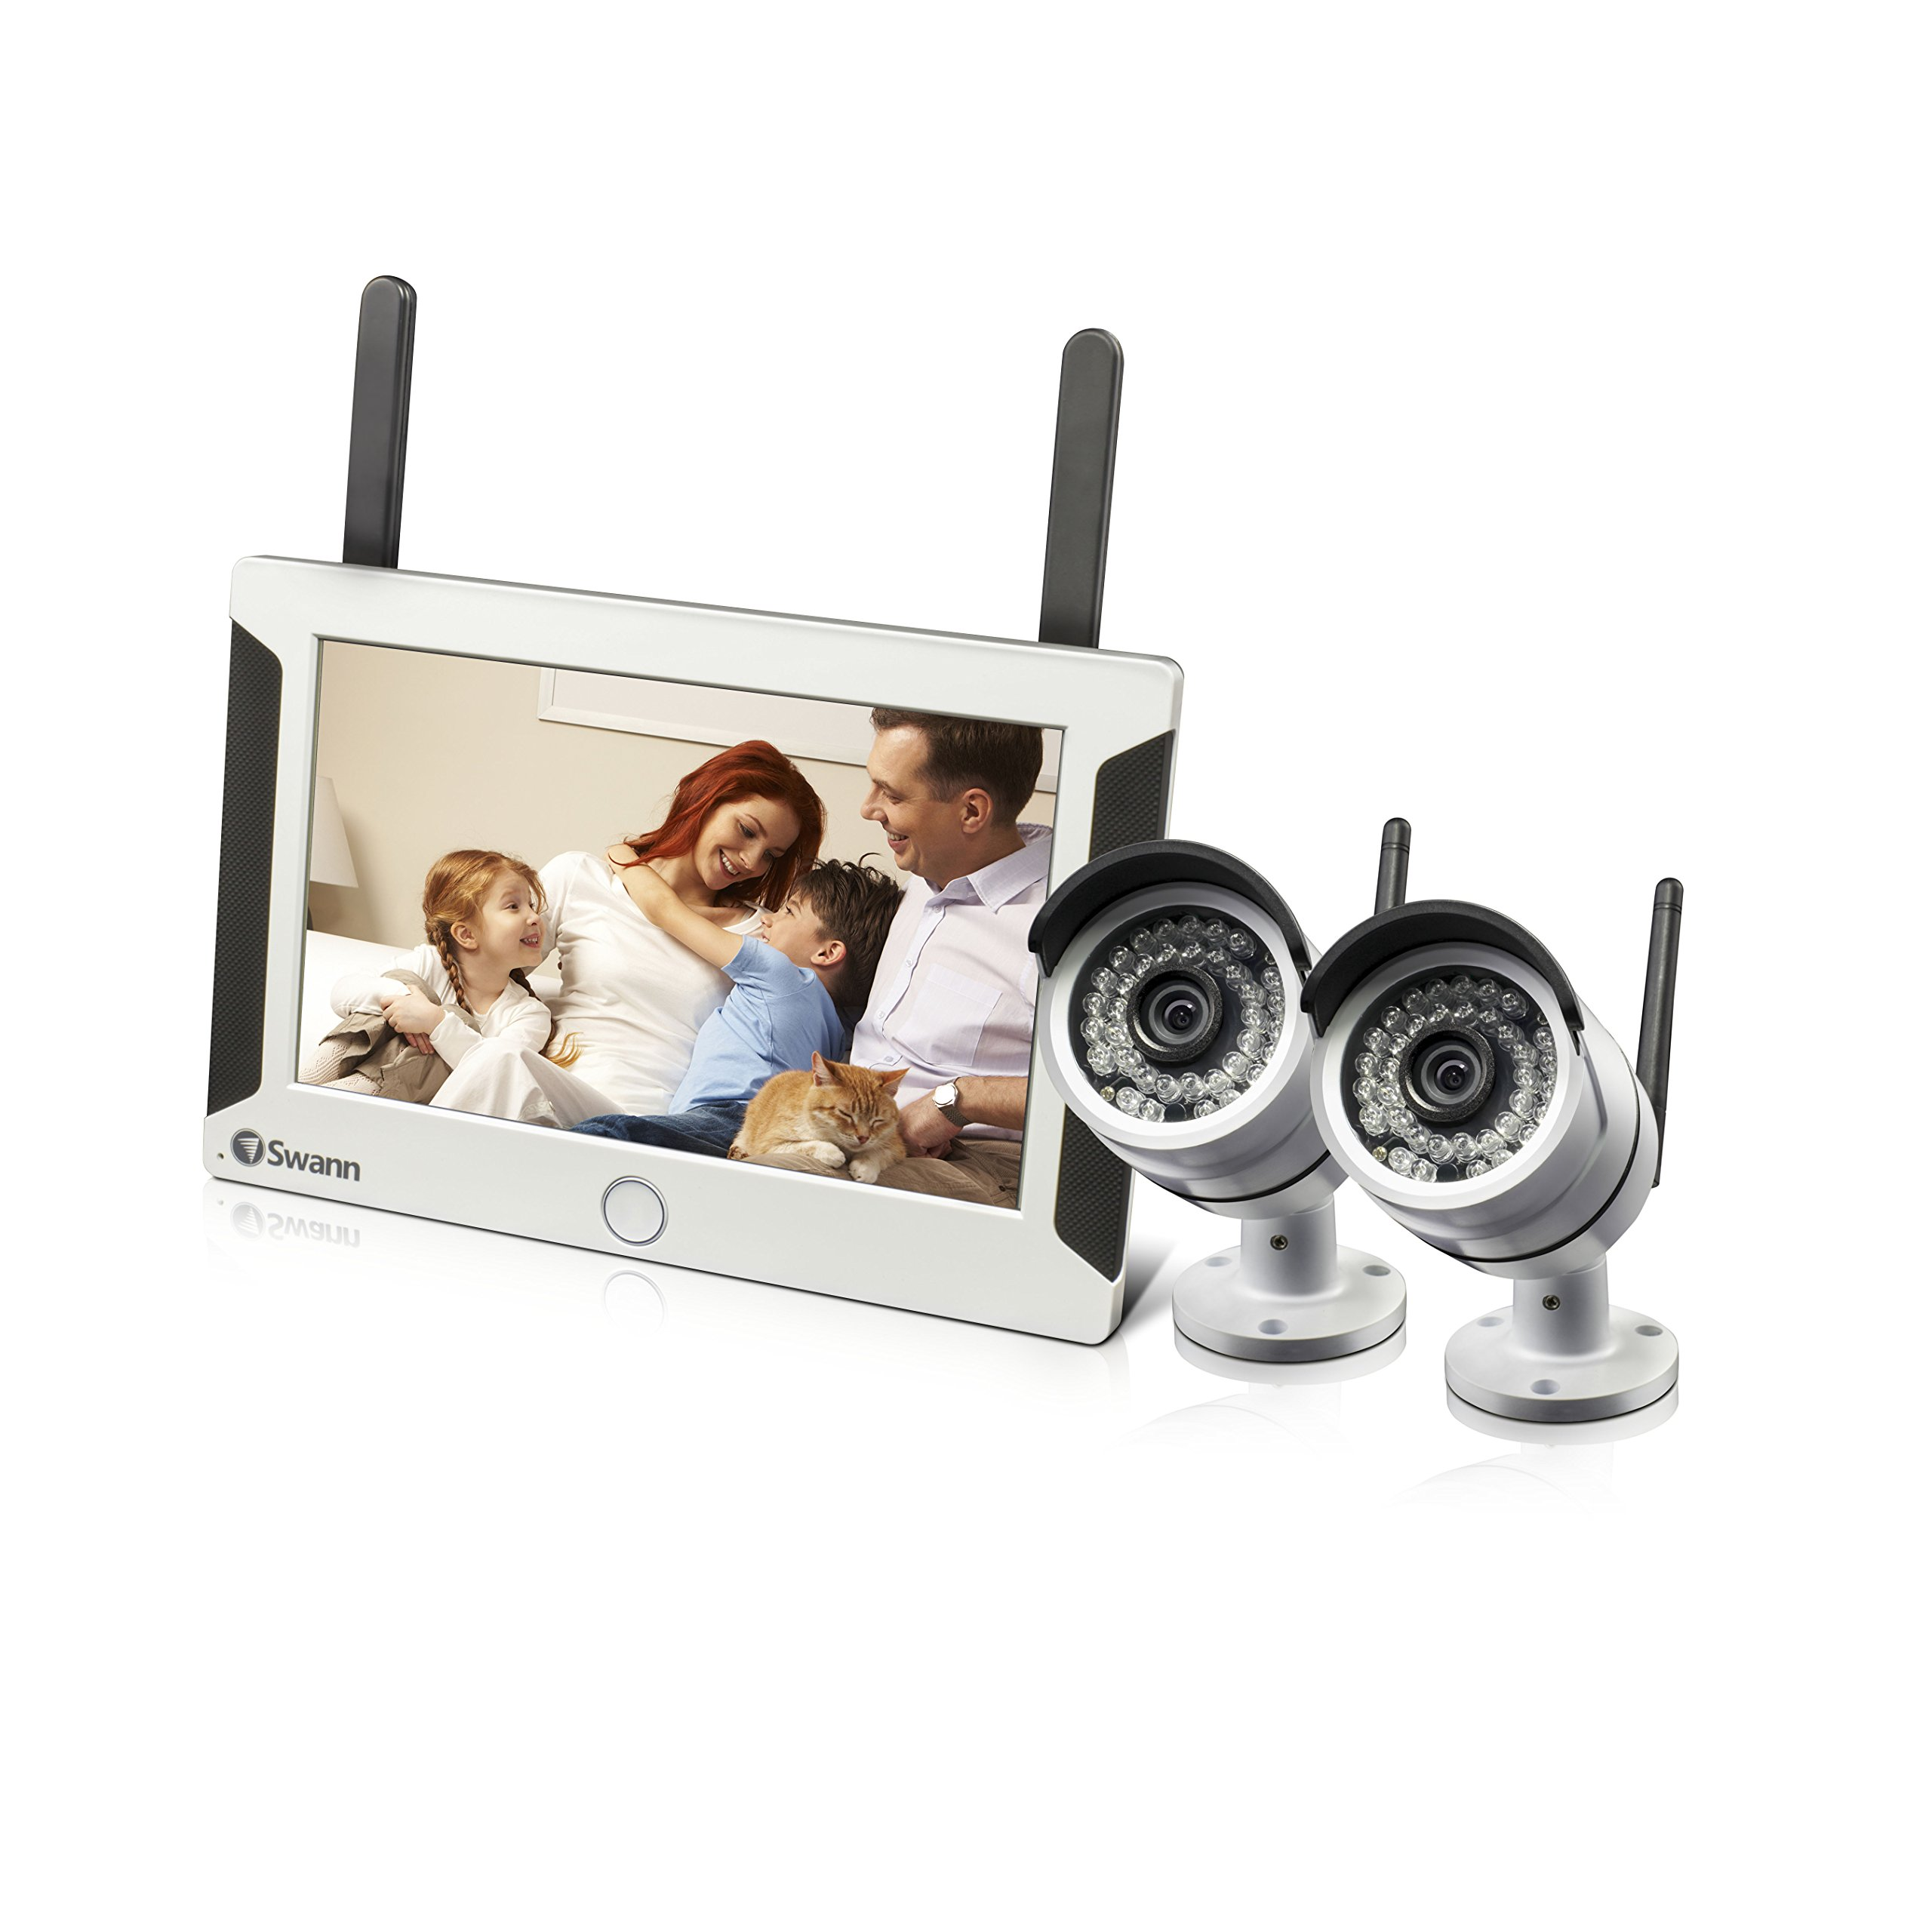 Swann  All-in-One Wi-Fi HD Monitoring System with 7'' Touch Screen Monitor, Motion Trigger & 2 x 720P Cameras, White - SWNVW-470PK2-US